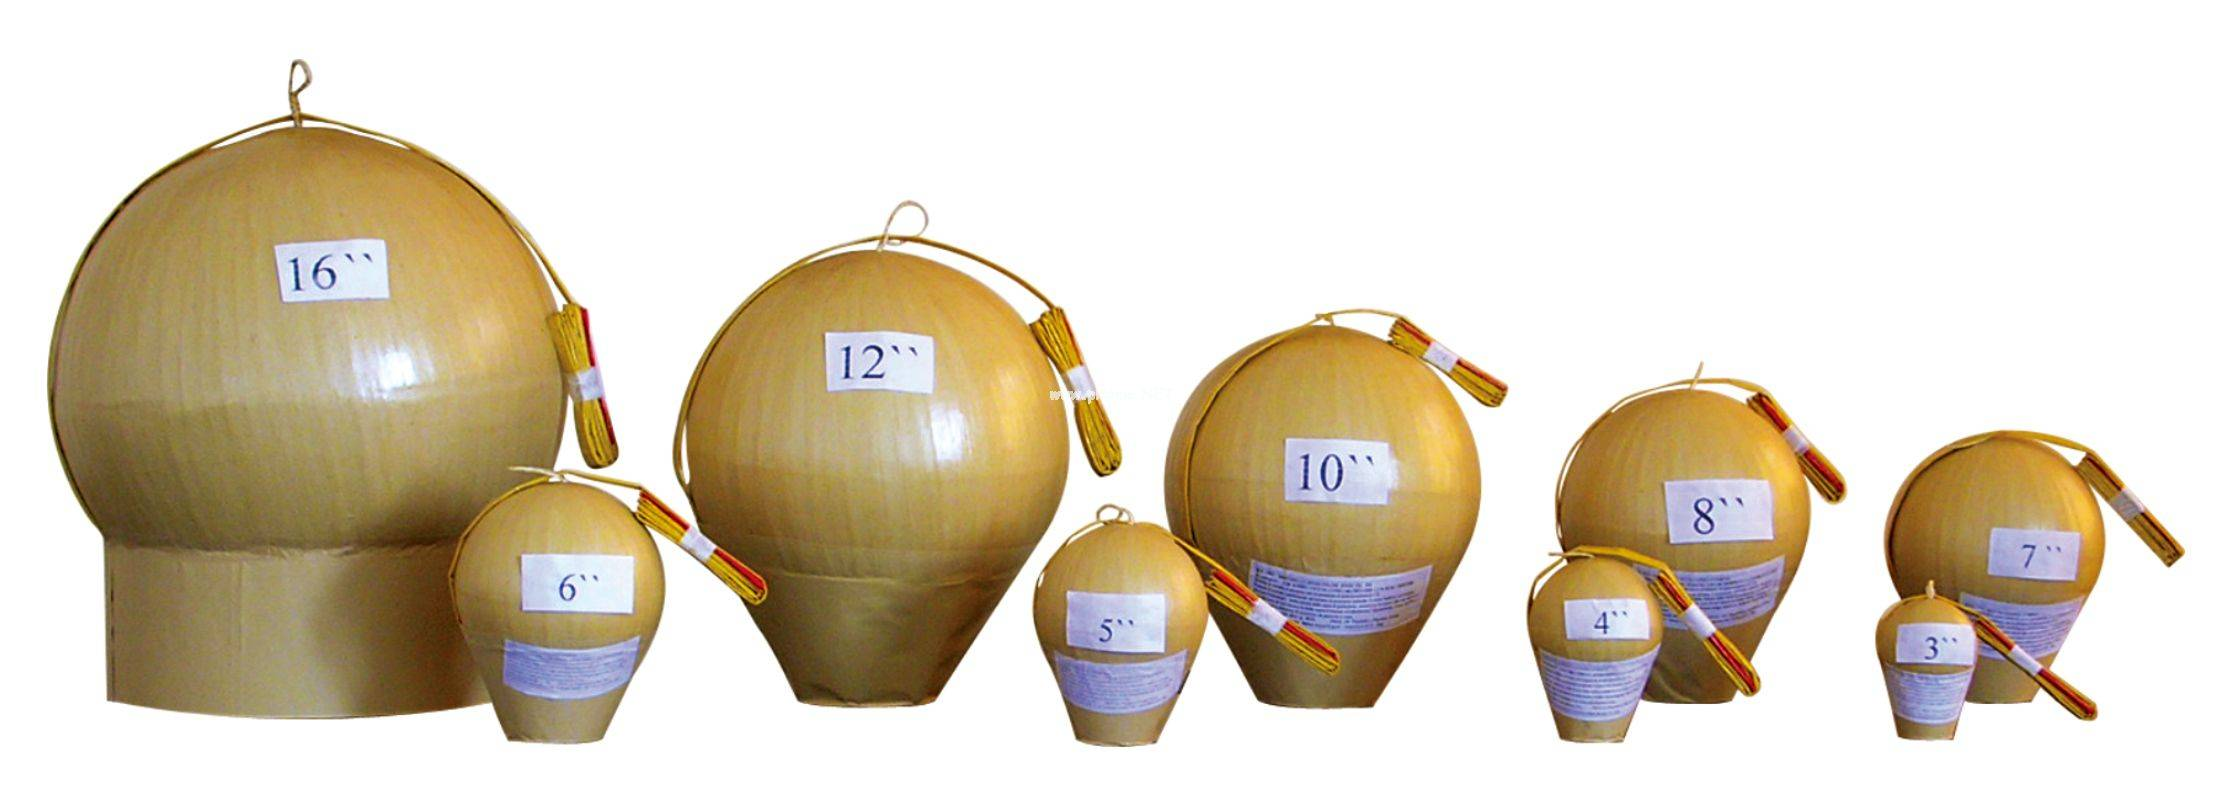 Display Shells- 1.3G Fireworks for festivals, wedding